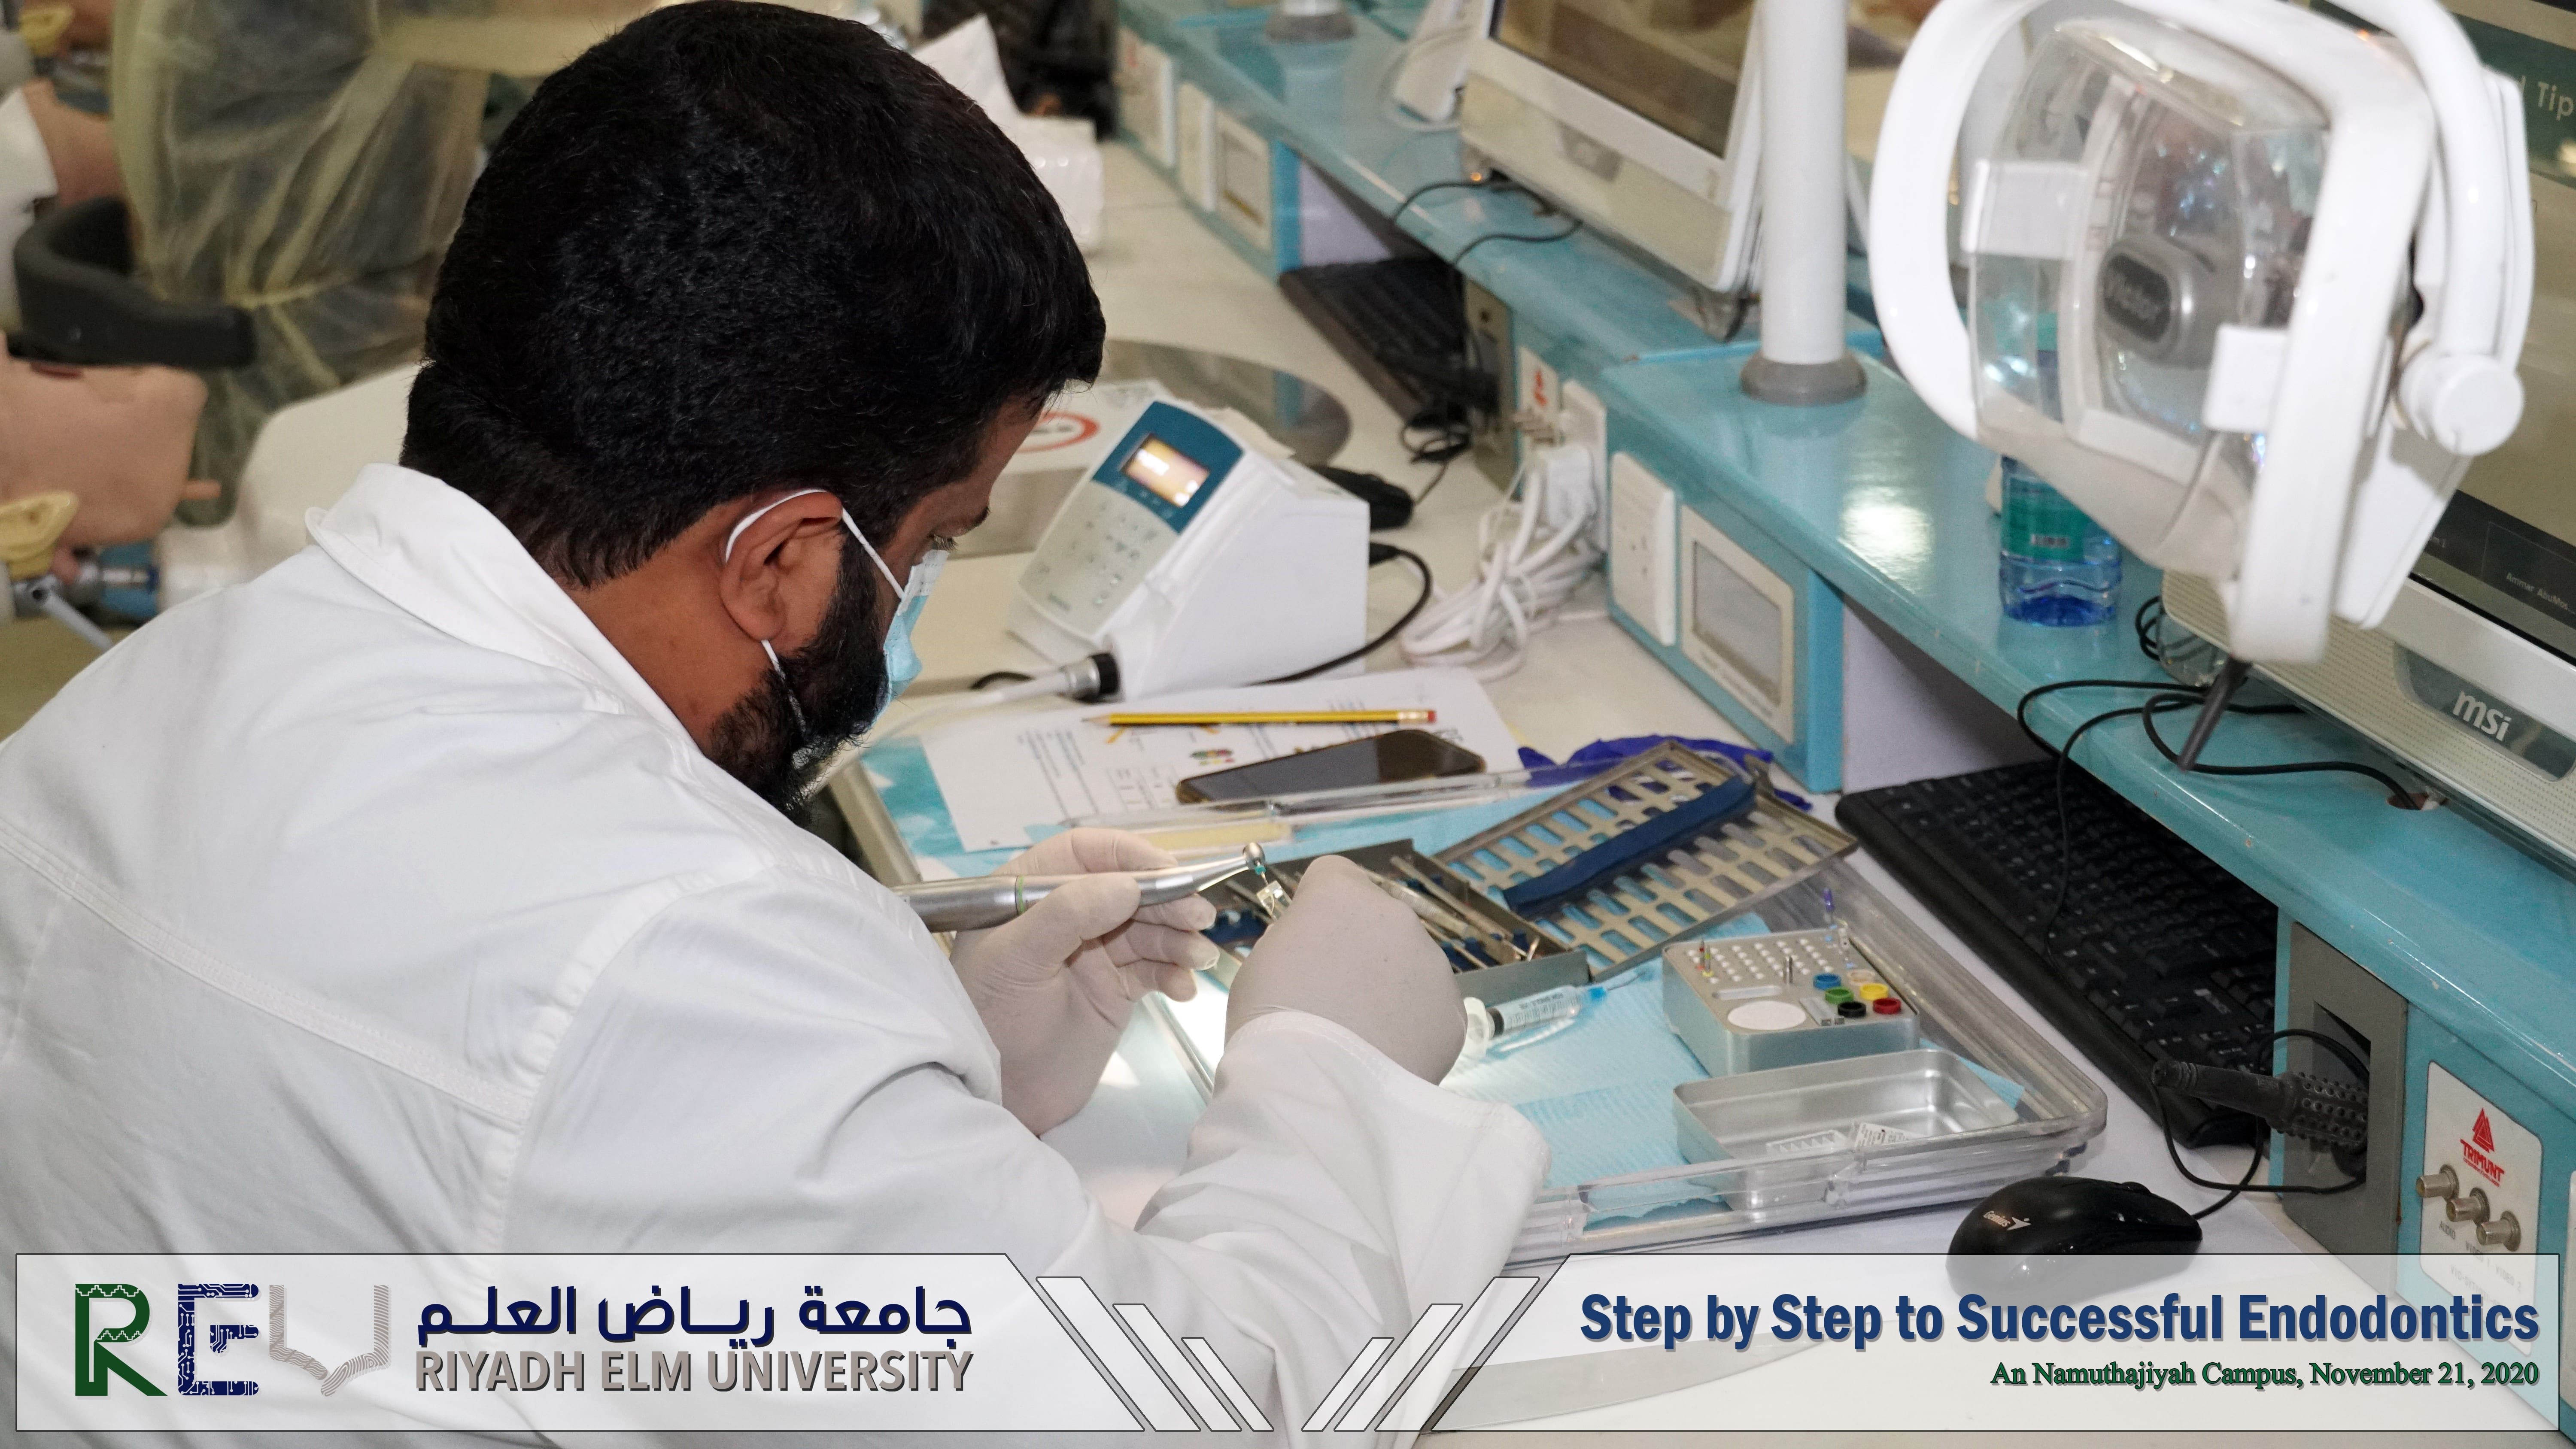 Step by Step to Successful Endodontics Course